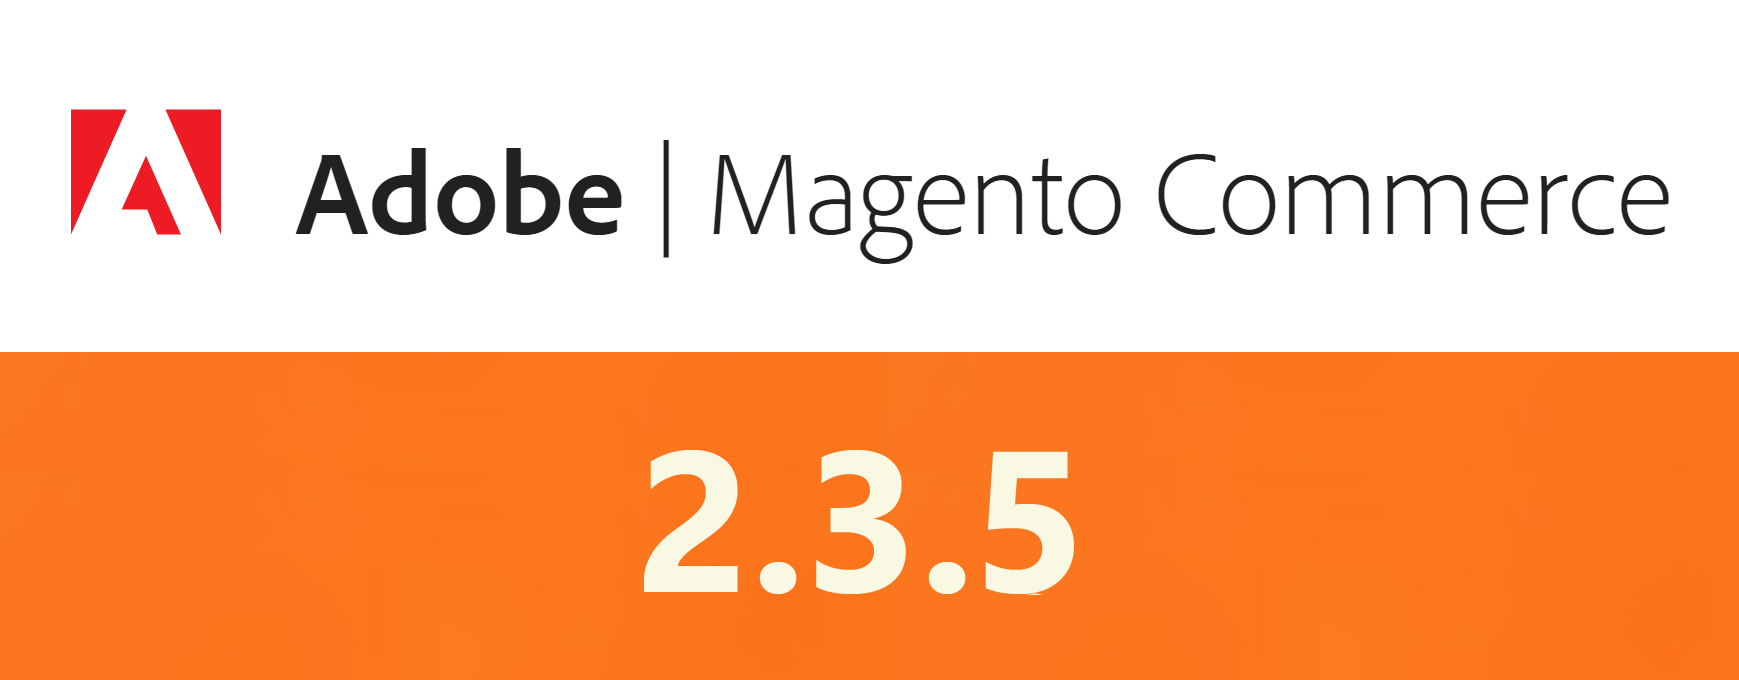 Magento Commerce 2.3.5: What's New?